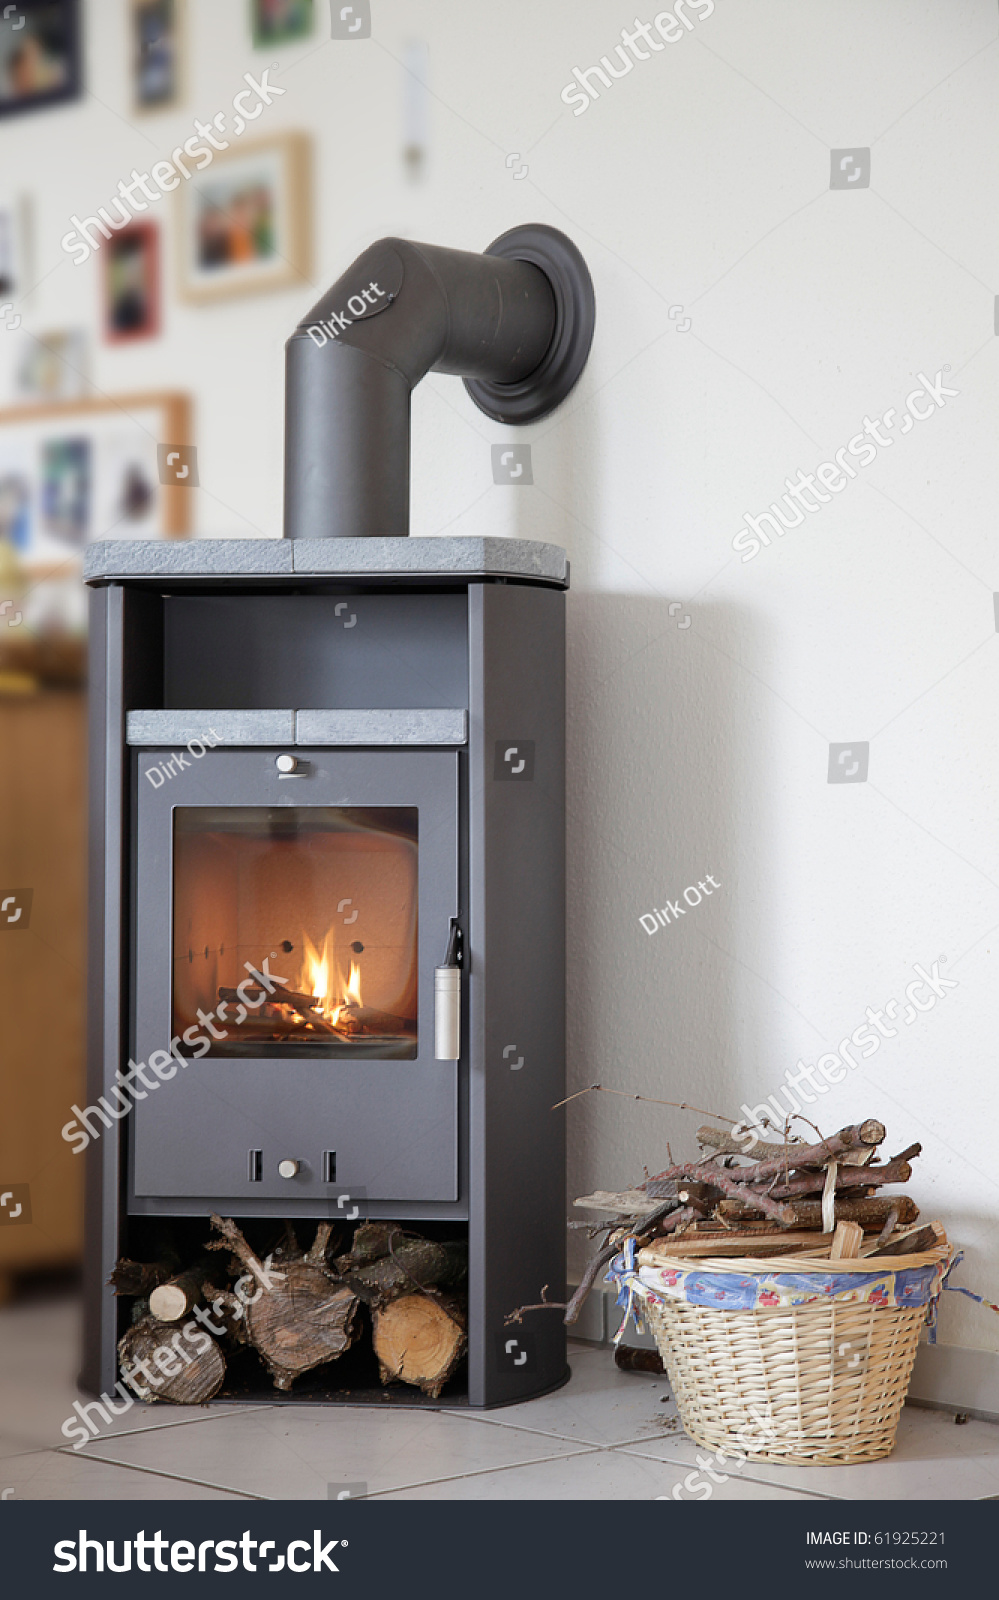 Modern wood burning stove inside cozy stock photo 61925221 shutterstock for Living room with wood burning stove